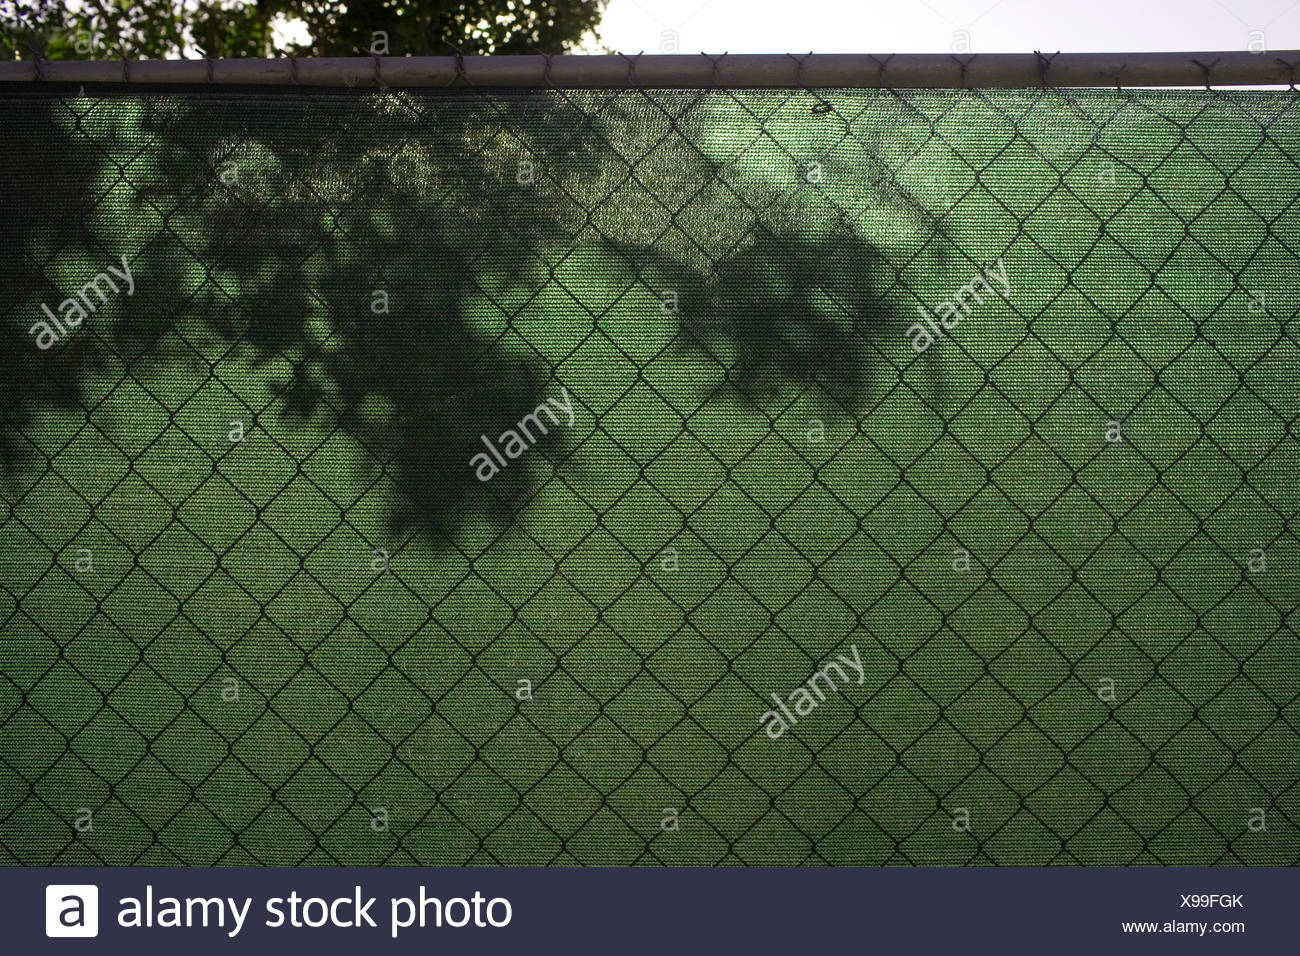 Green screen on wire fence - Stock Image